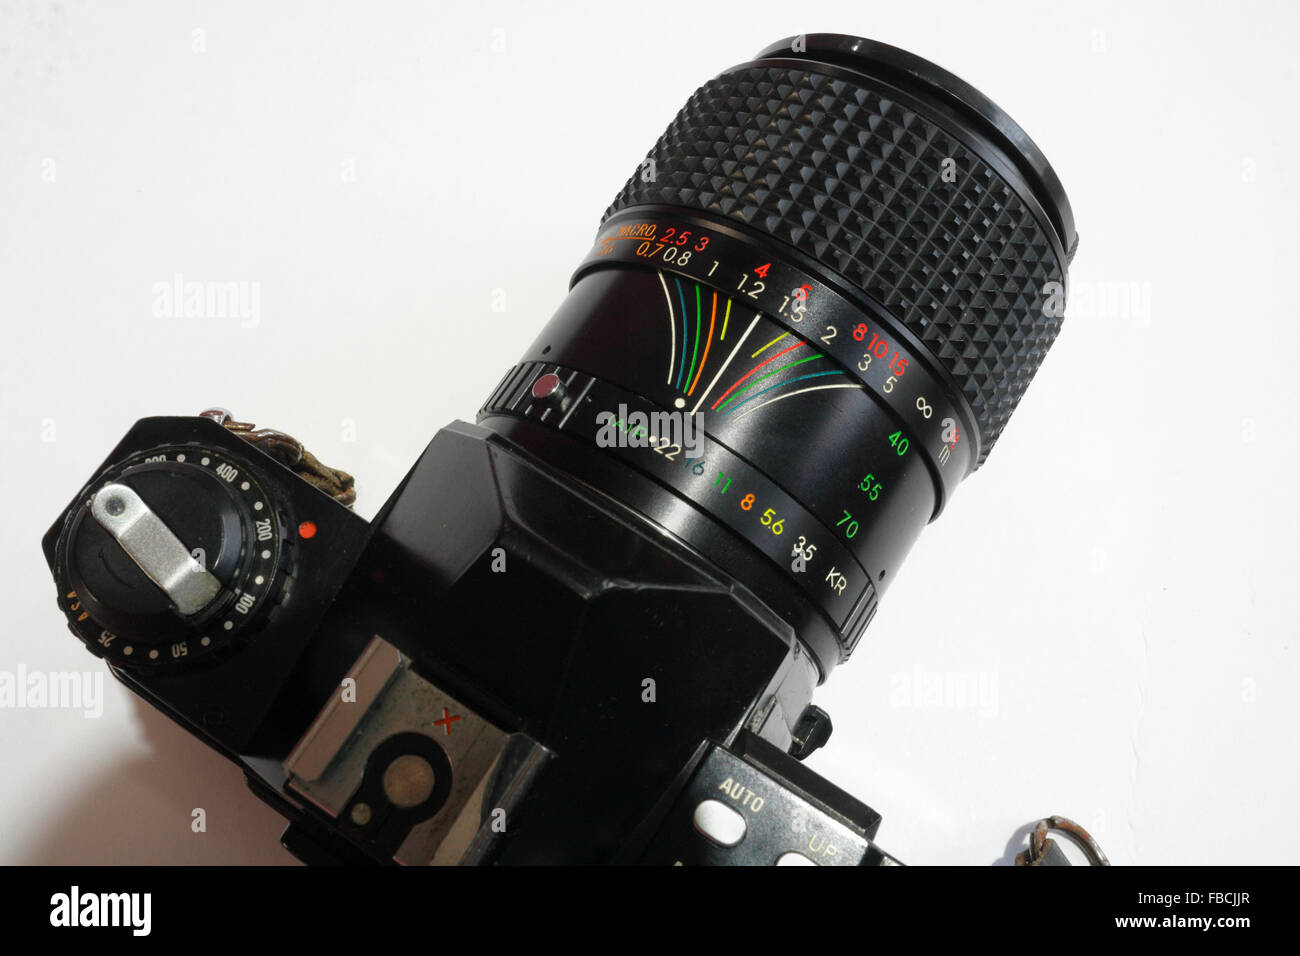 Film SLR camera with zoom lens showing depth of field scale - Stock Image